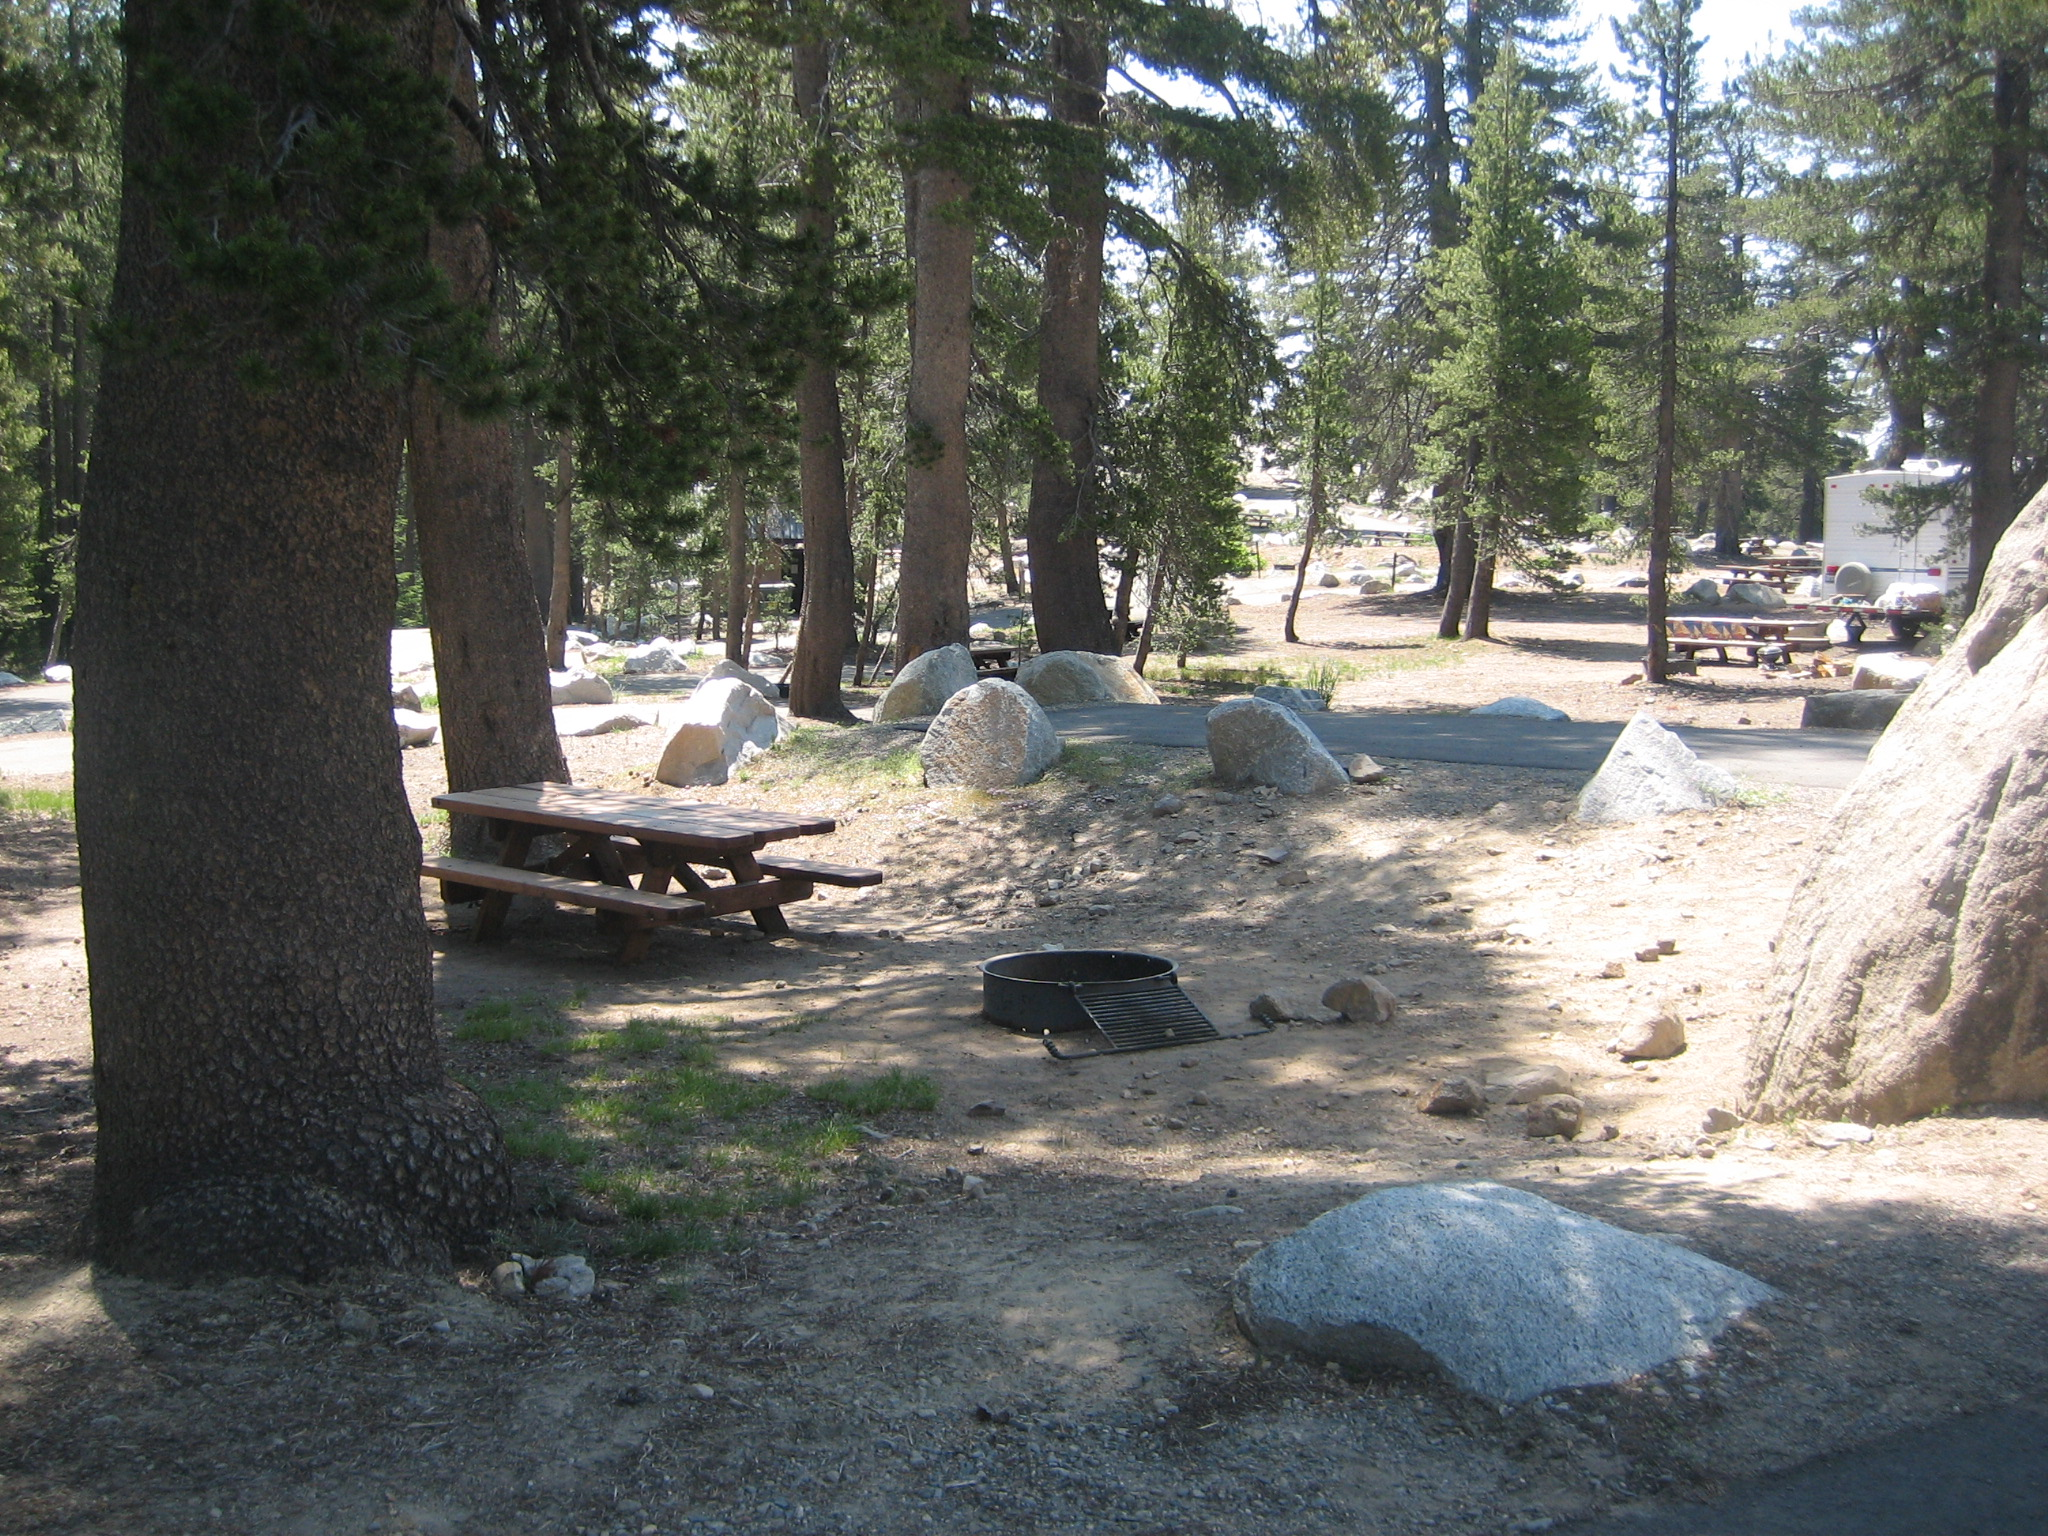 Roomy campsites